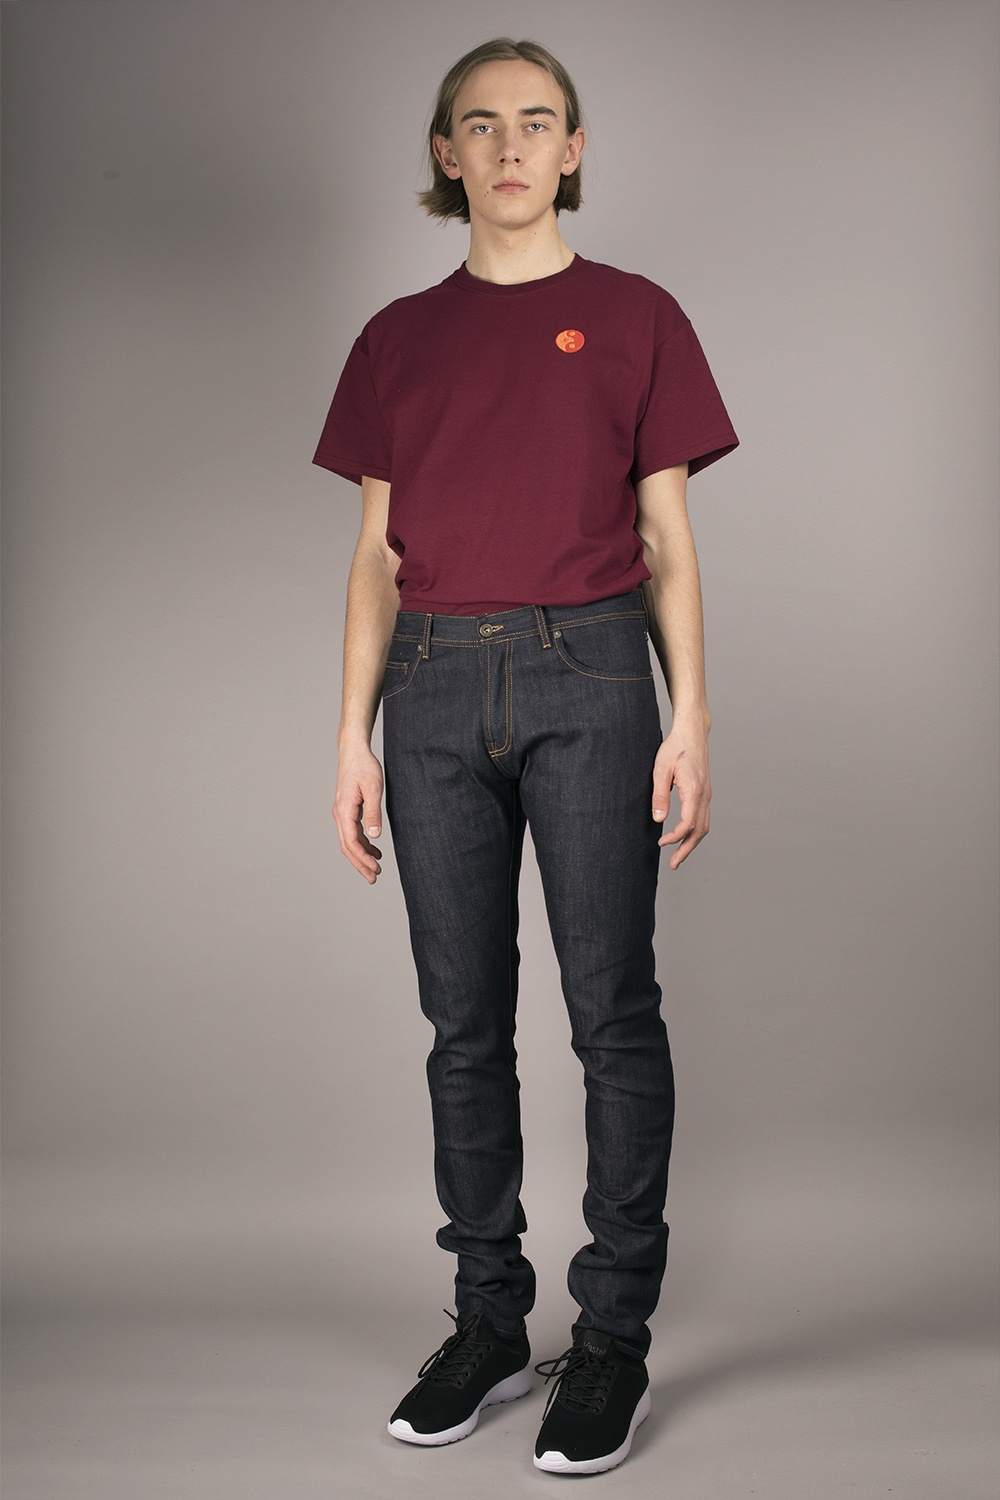 Livid Jeans - Edvard - Dry Comfort Selvedge Image